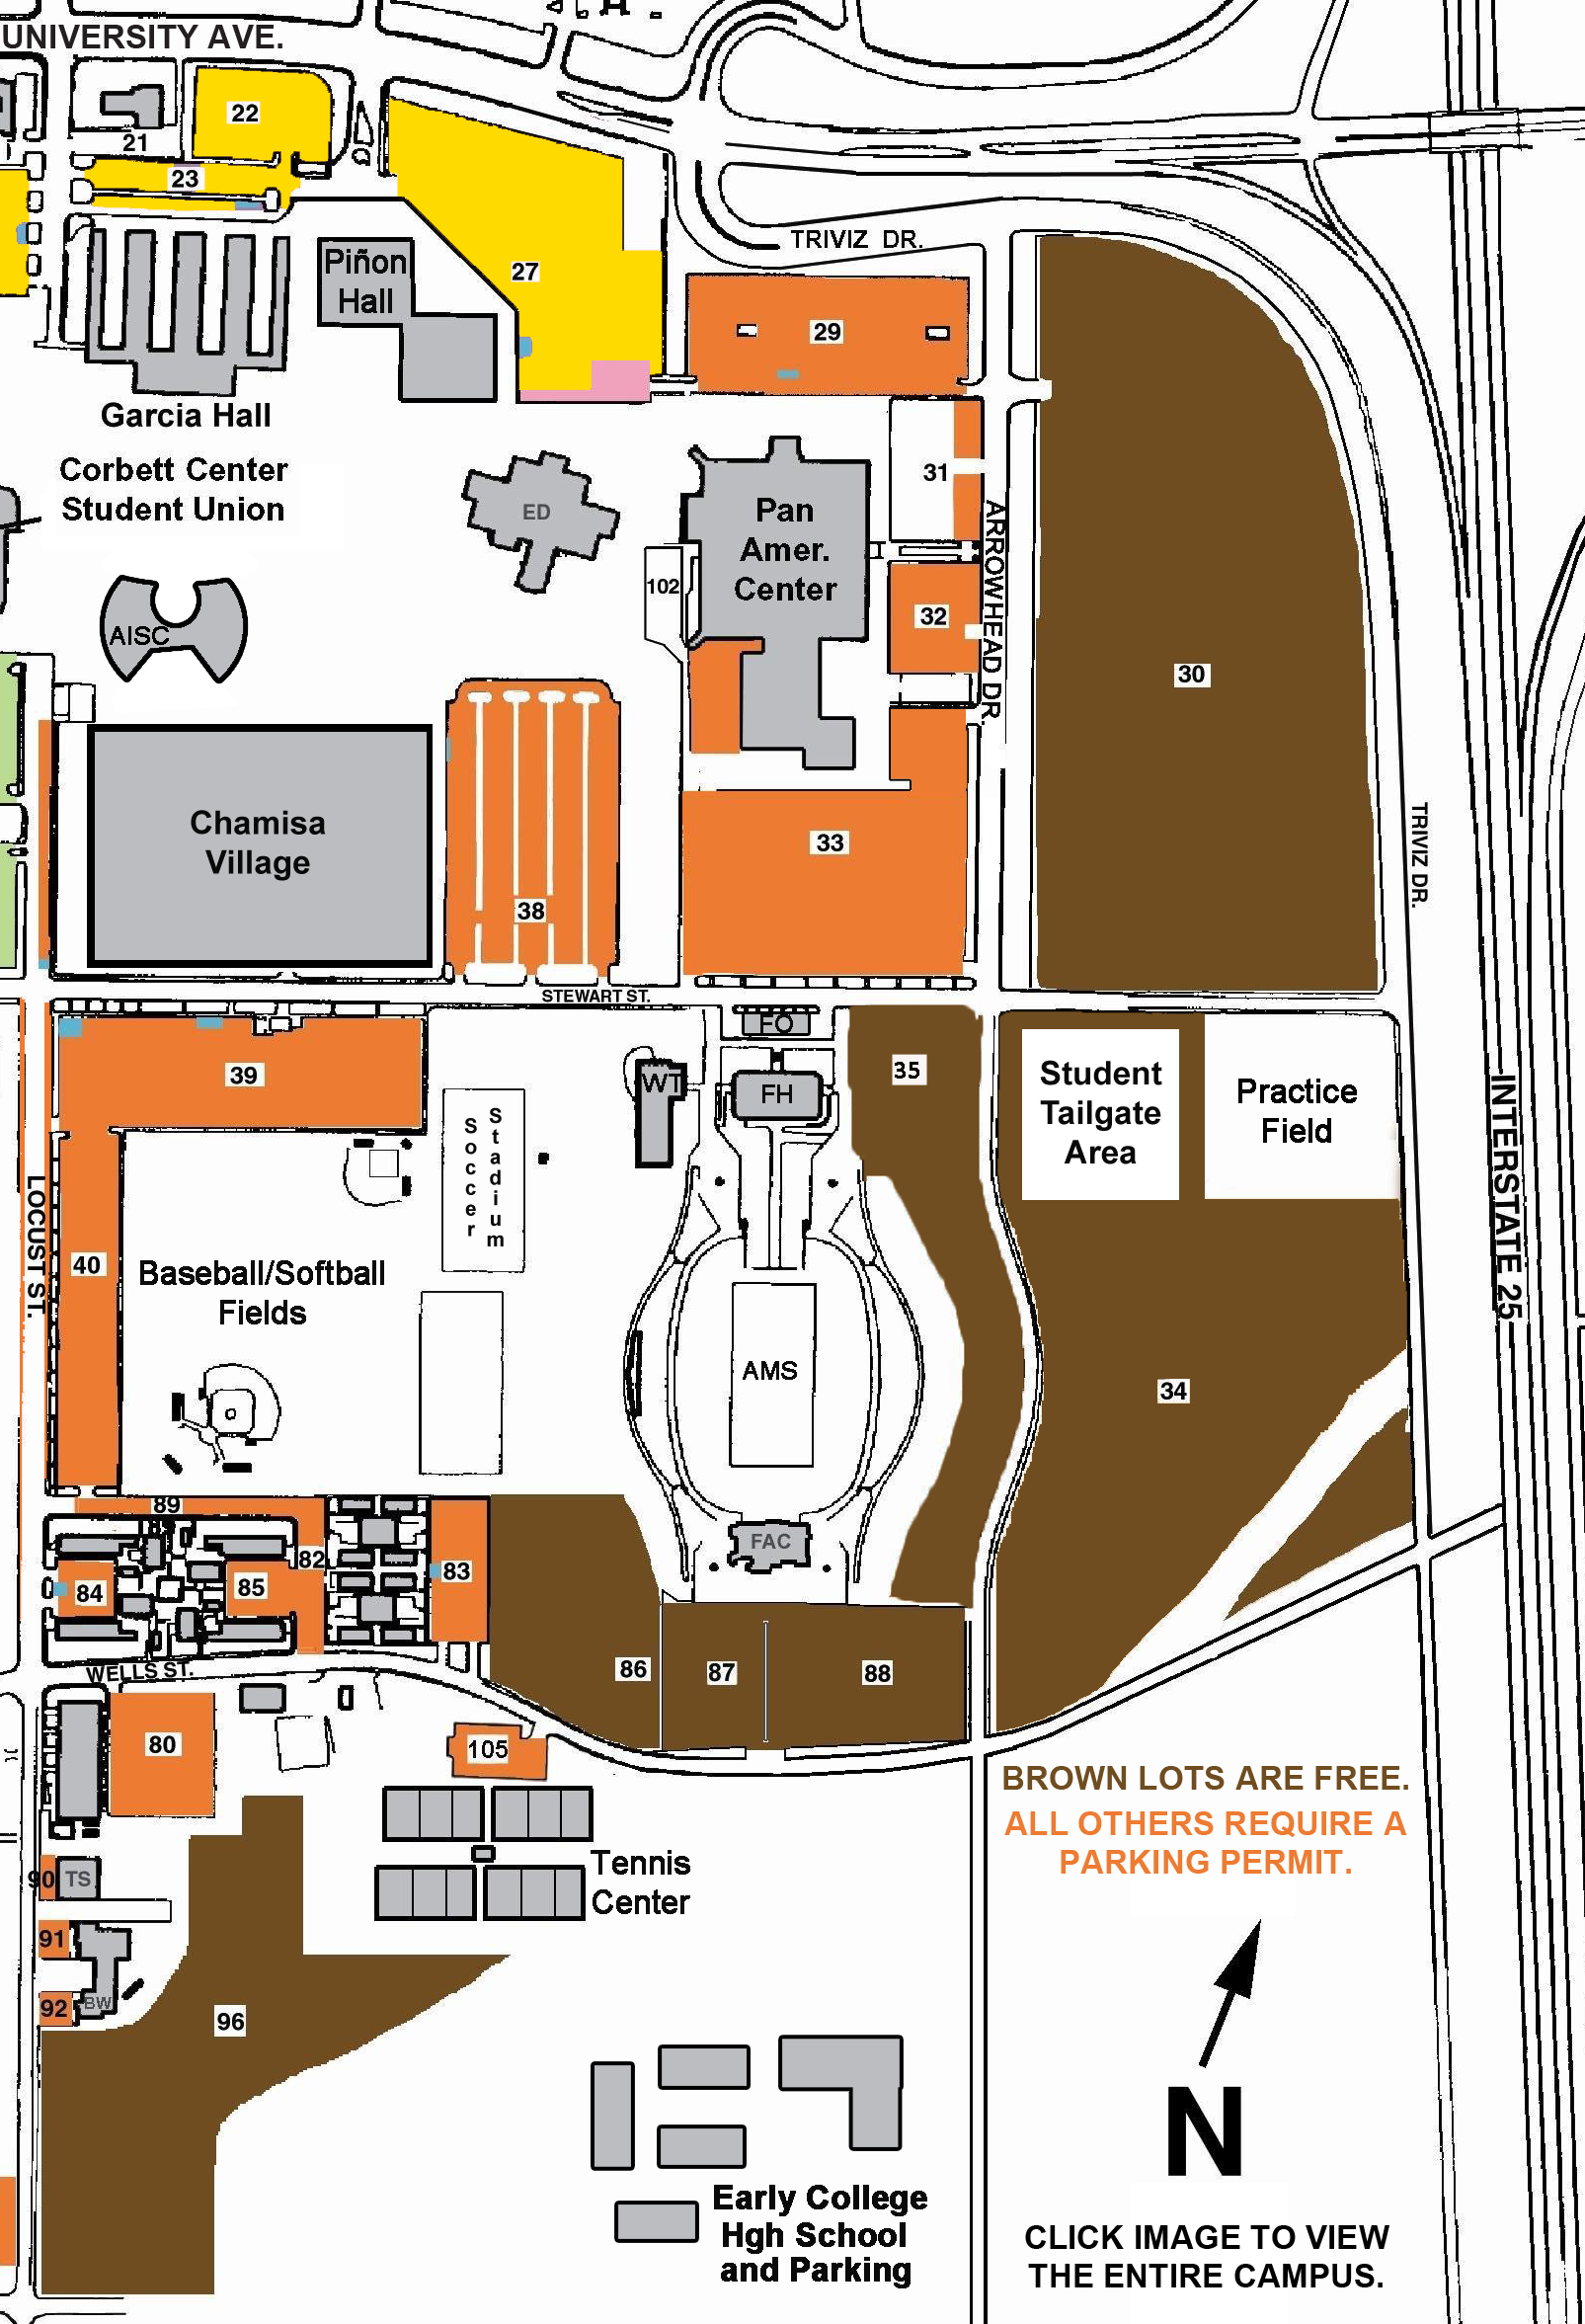 Nmsu Parking Map Parking for Pan Am Center & Aggie Memorial Stadium | Experience